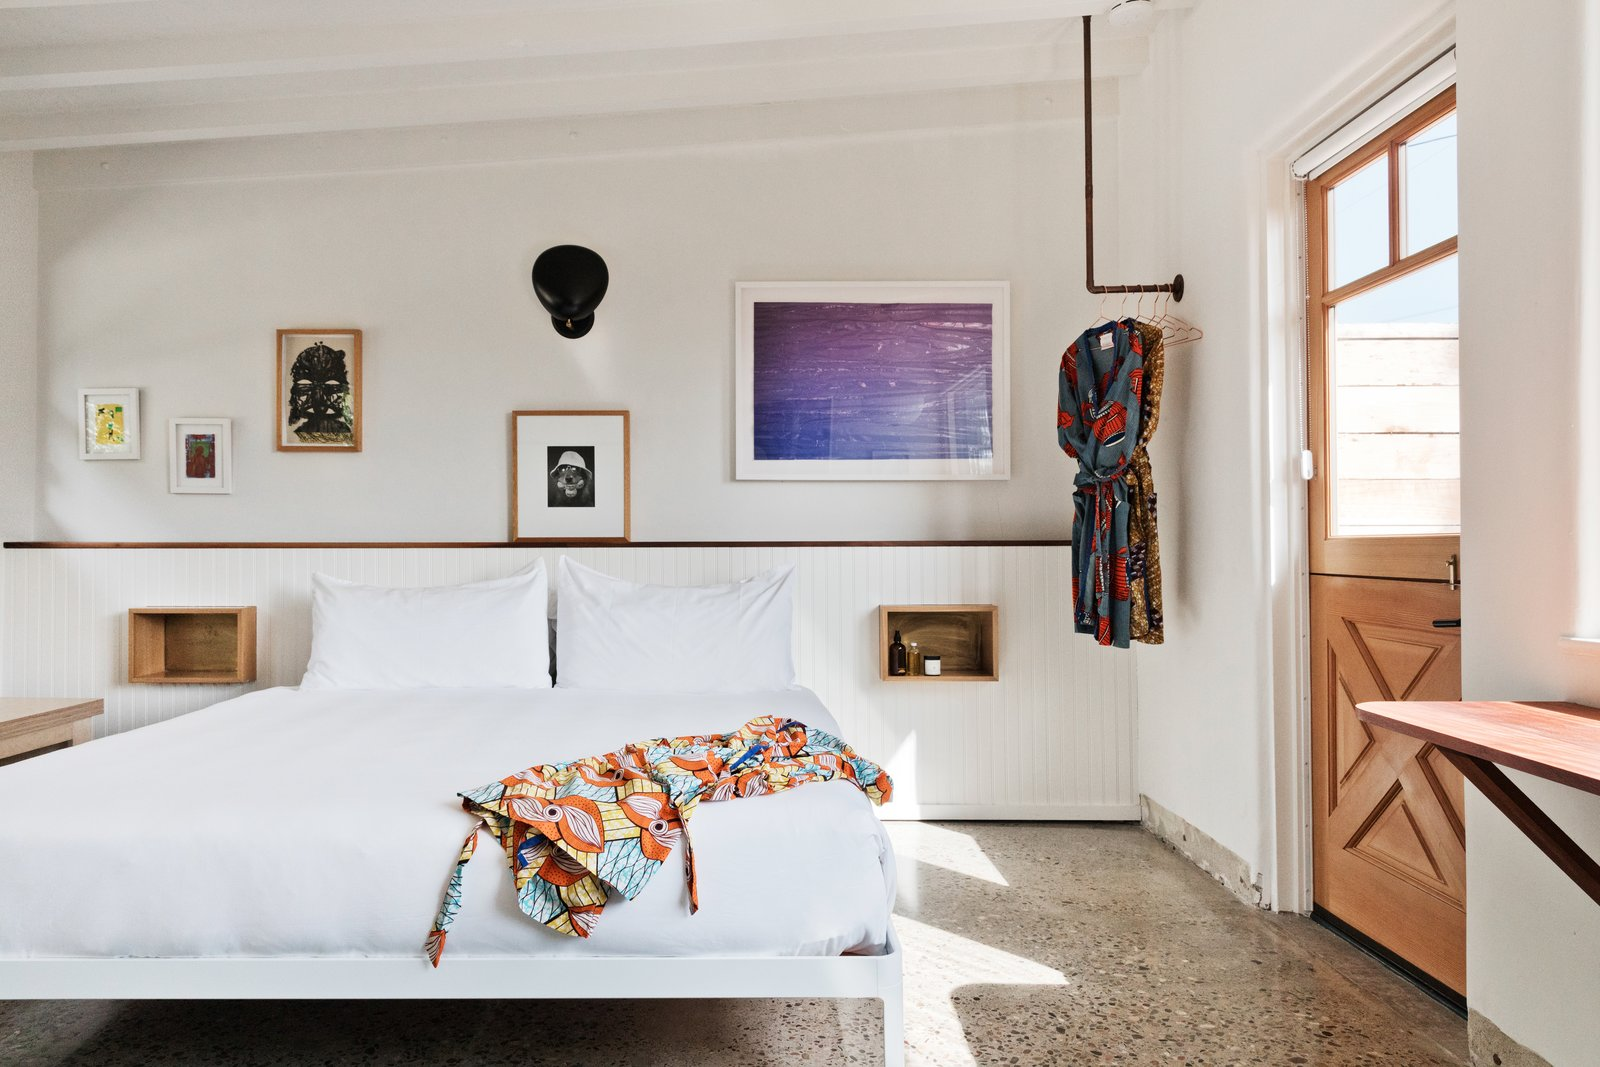 As if you needed another excuse to visit Malibu, Native beckons as a stylish getaway with a storied past. Rooms start at $400 a night. Tagged: Bedroom, Bed, Wall Lighting, Shelves, and Terrazzo Floor.  Best Photos from Do Malibu in Style With the Native Hotel, a Rejuvenated Hollywood Favorite